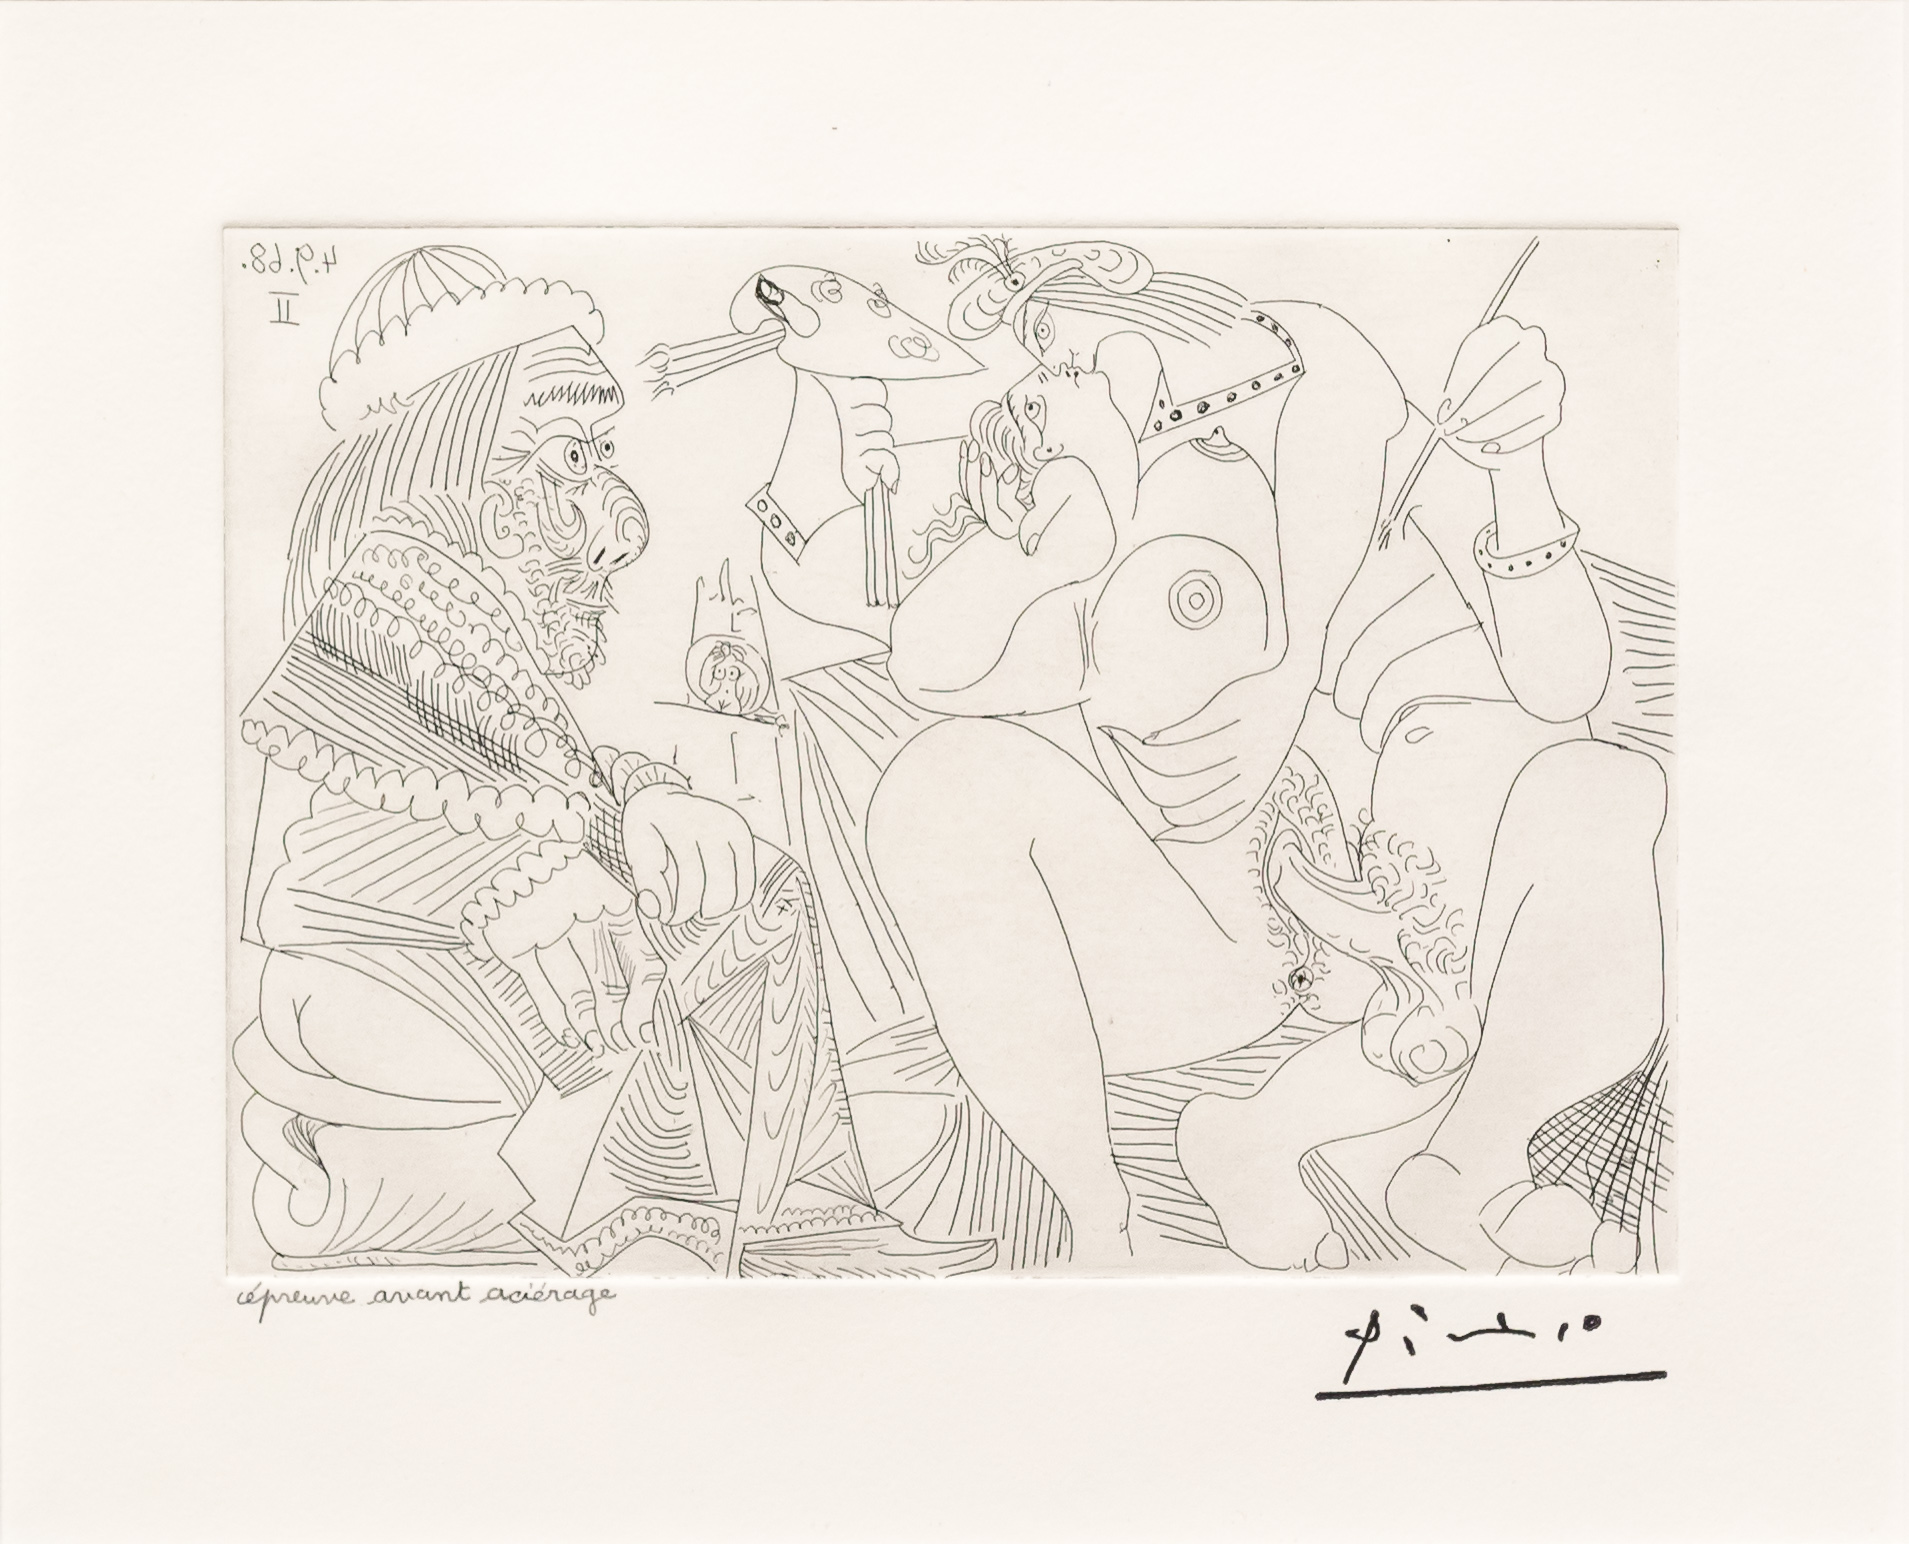 Raphael et la Fornarina XVI…, from the 347 Series by Pablo Picasso